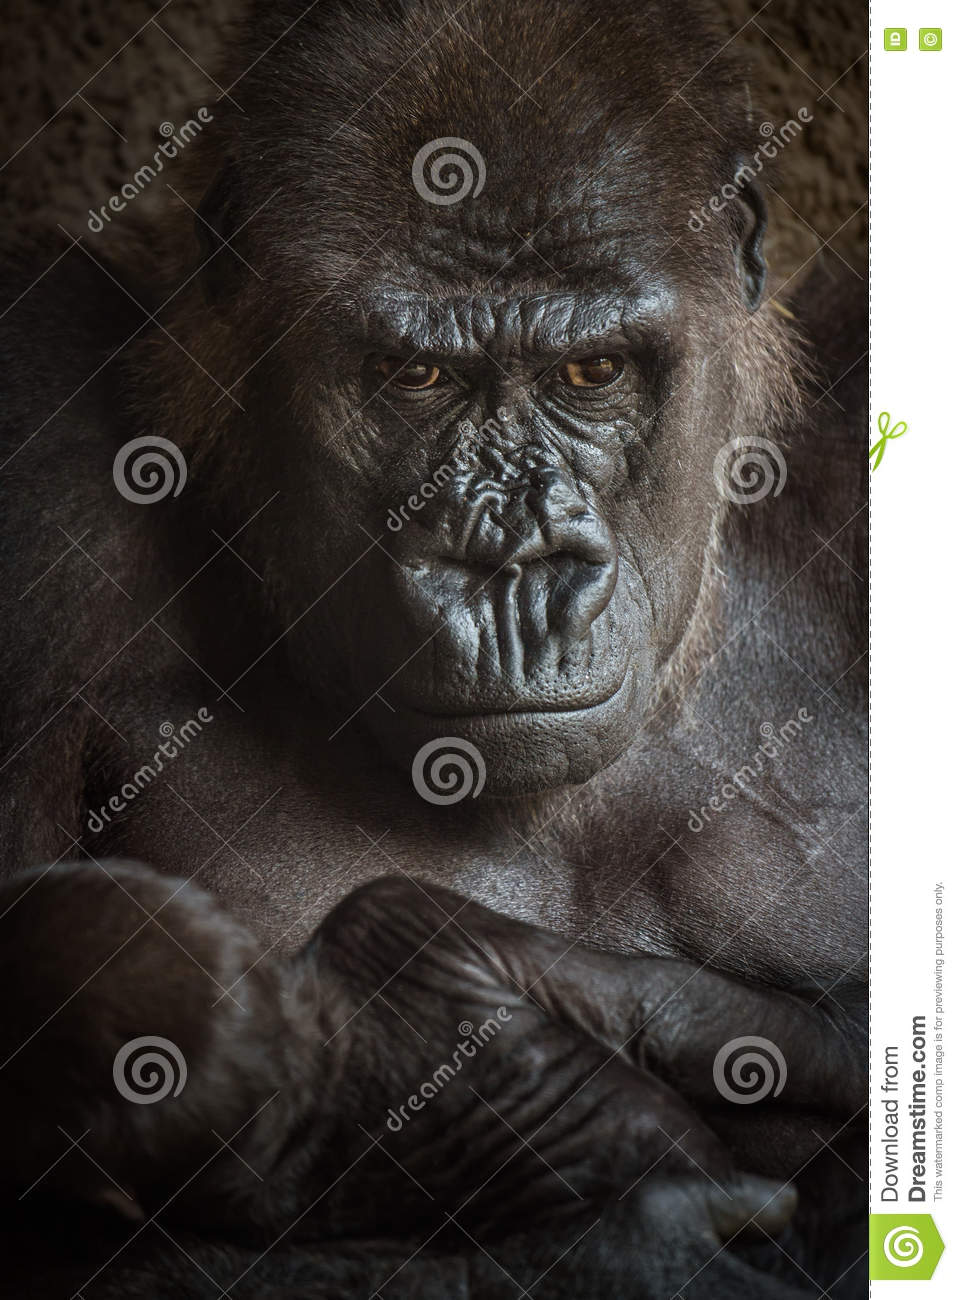 Angry-looking Gorilla With A Baby Stock Image - Image of ... - photo#26